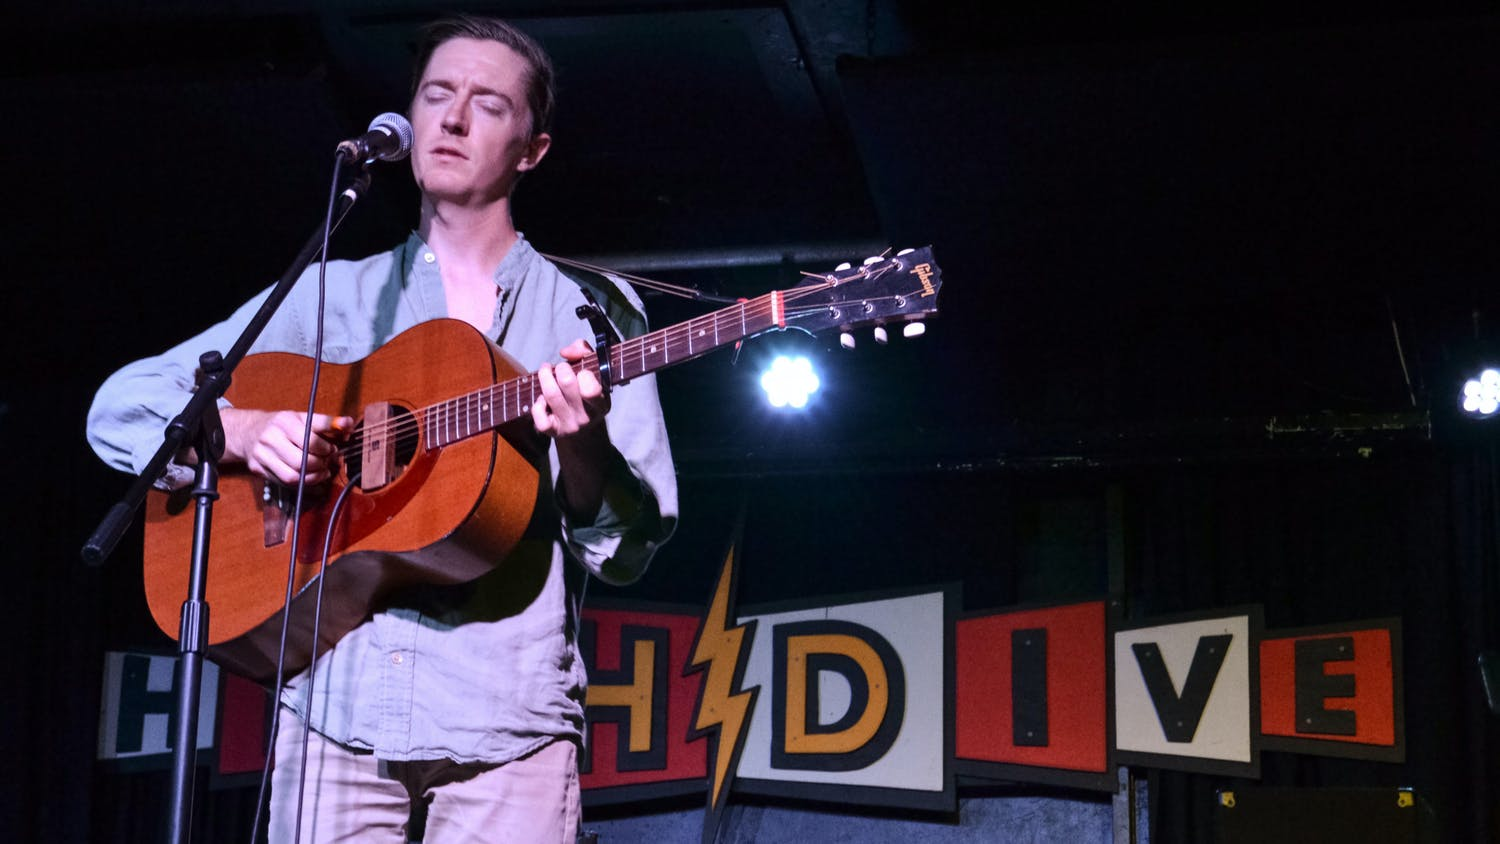 Quincy Allen-Flint performs an acoustic set at the High Dive, located at 210 SW 2nd Ave., during the Original Gainesville Food Truck Rally on June 5, 2021.